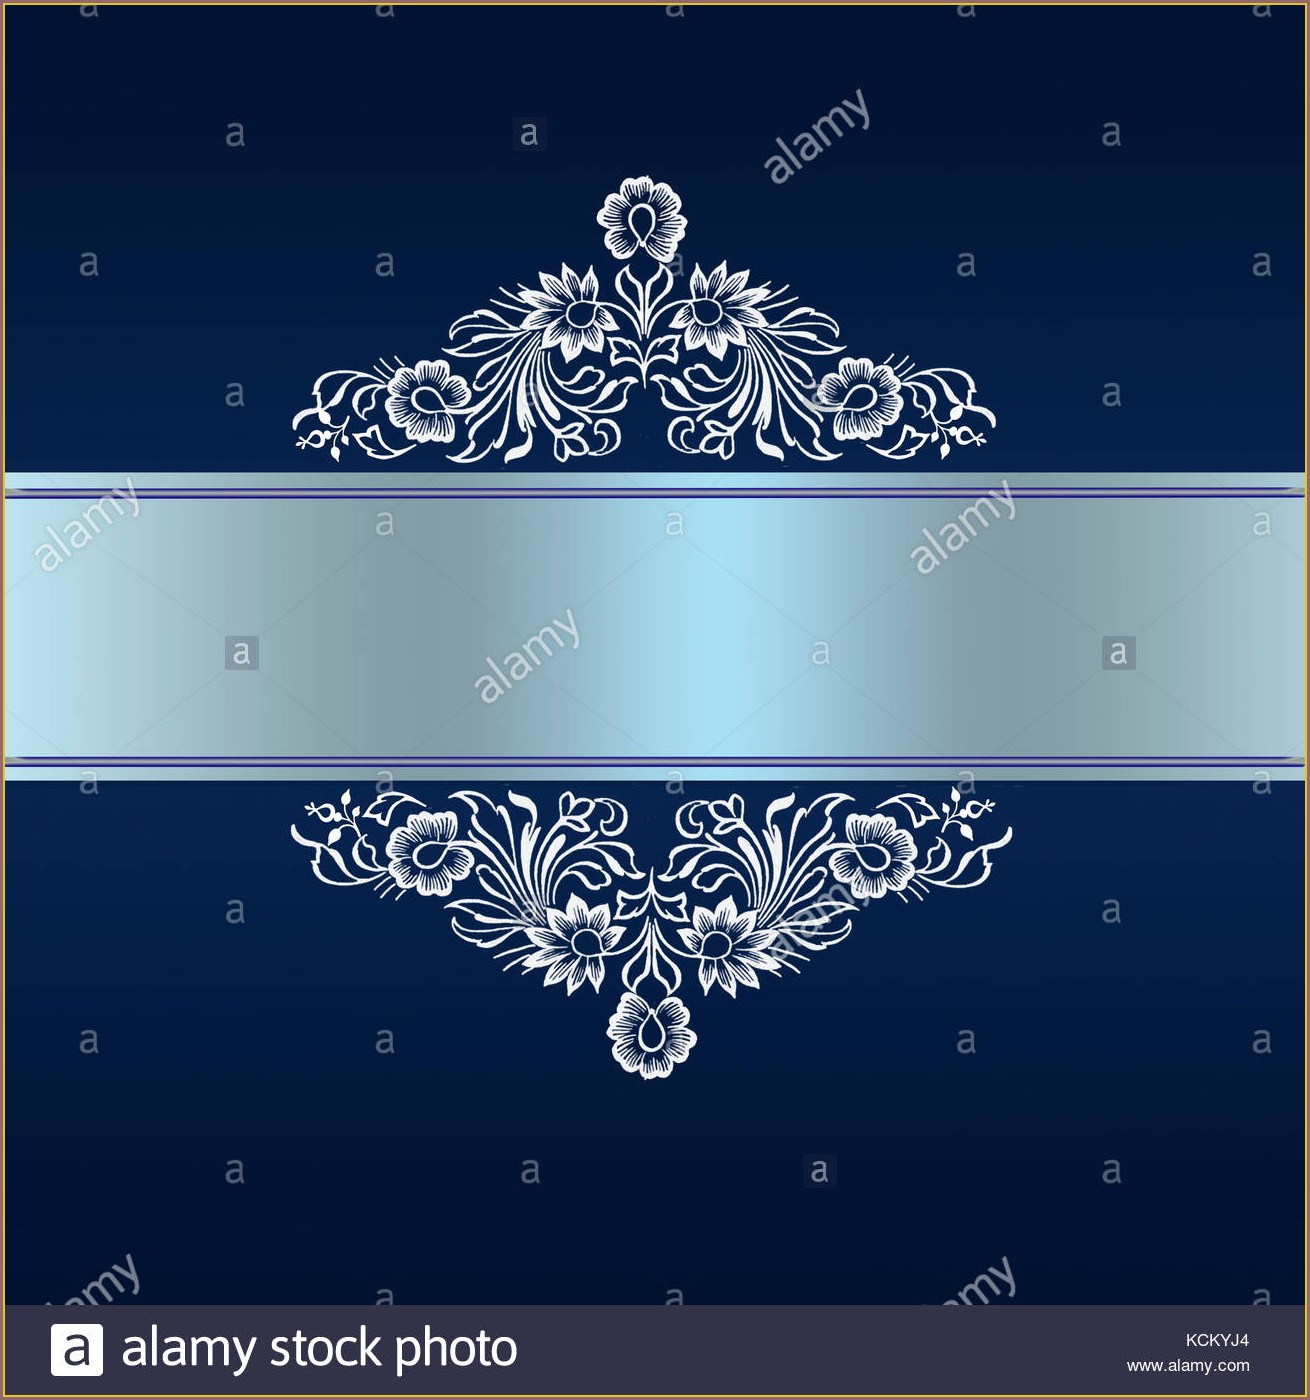 Elegant Border Royal Blue Wedding Invitation Background